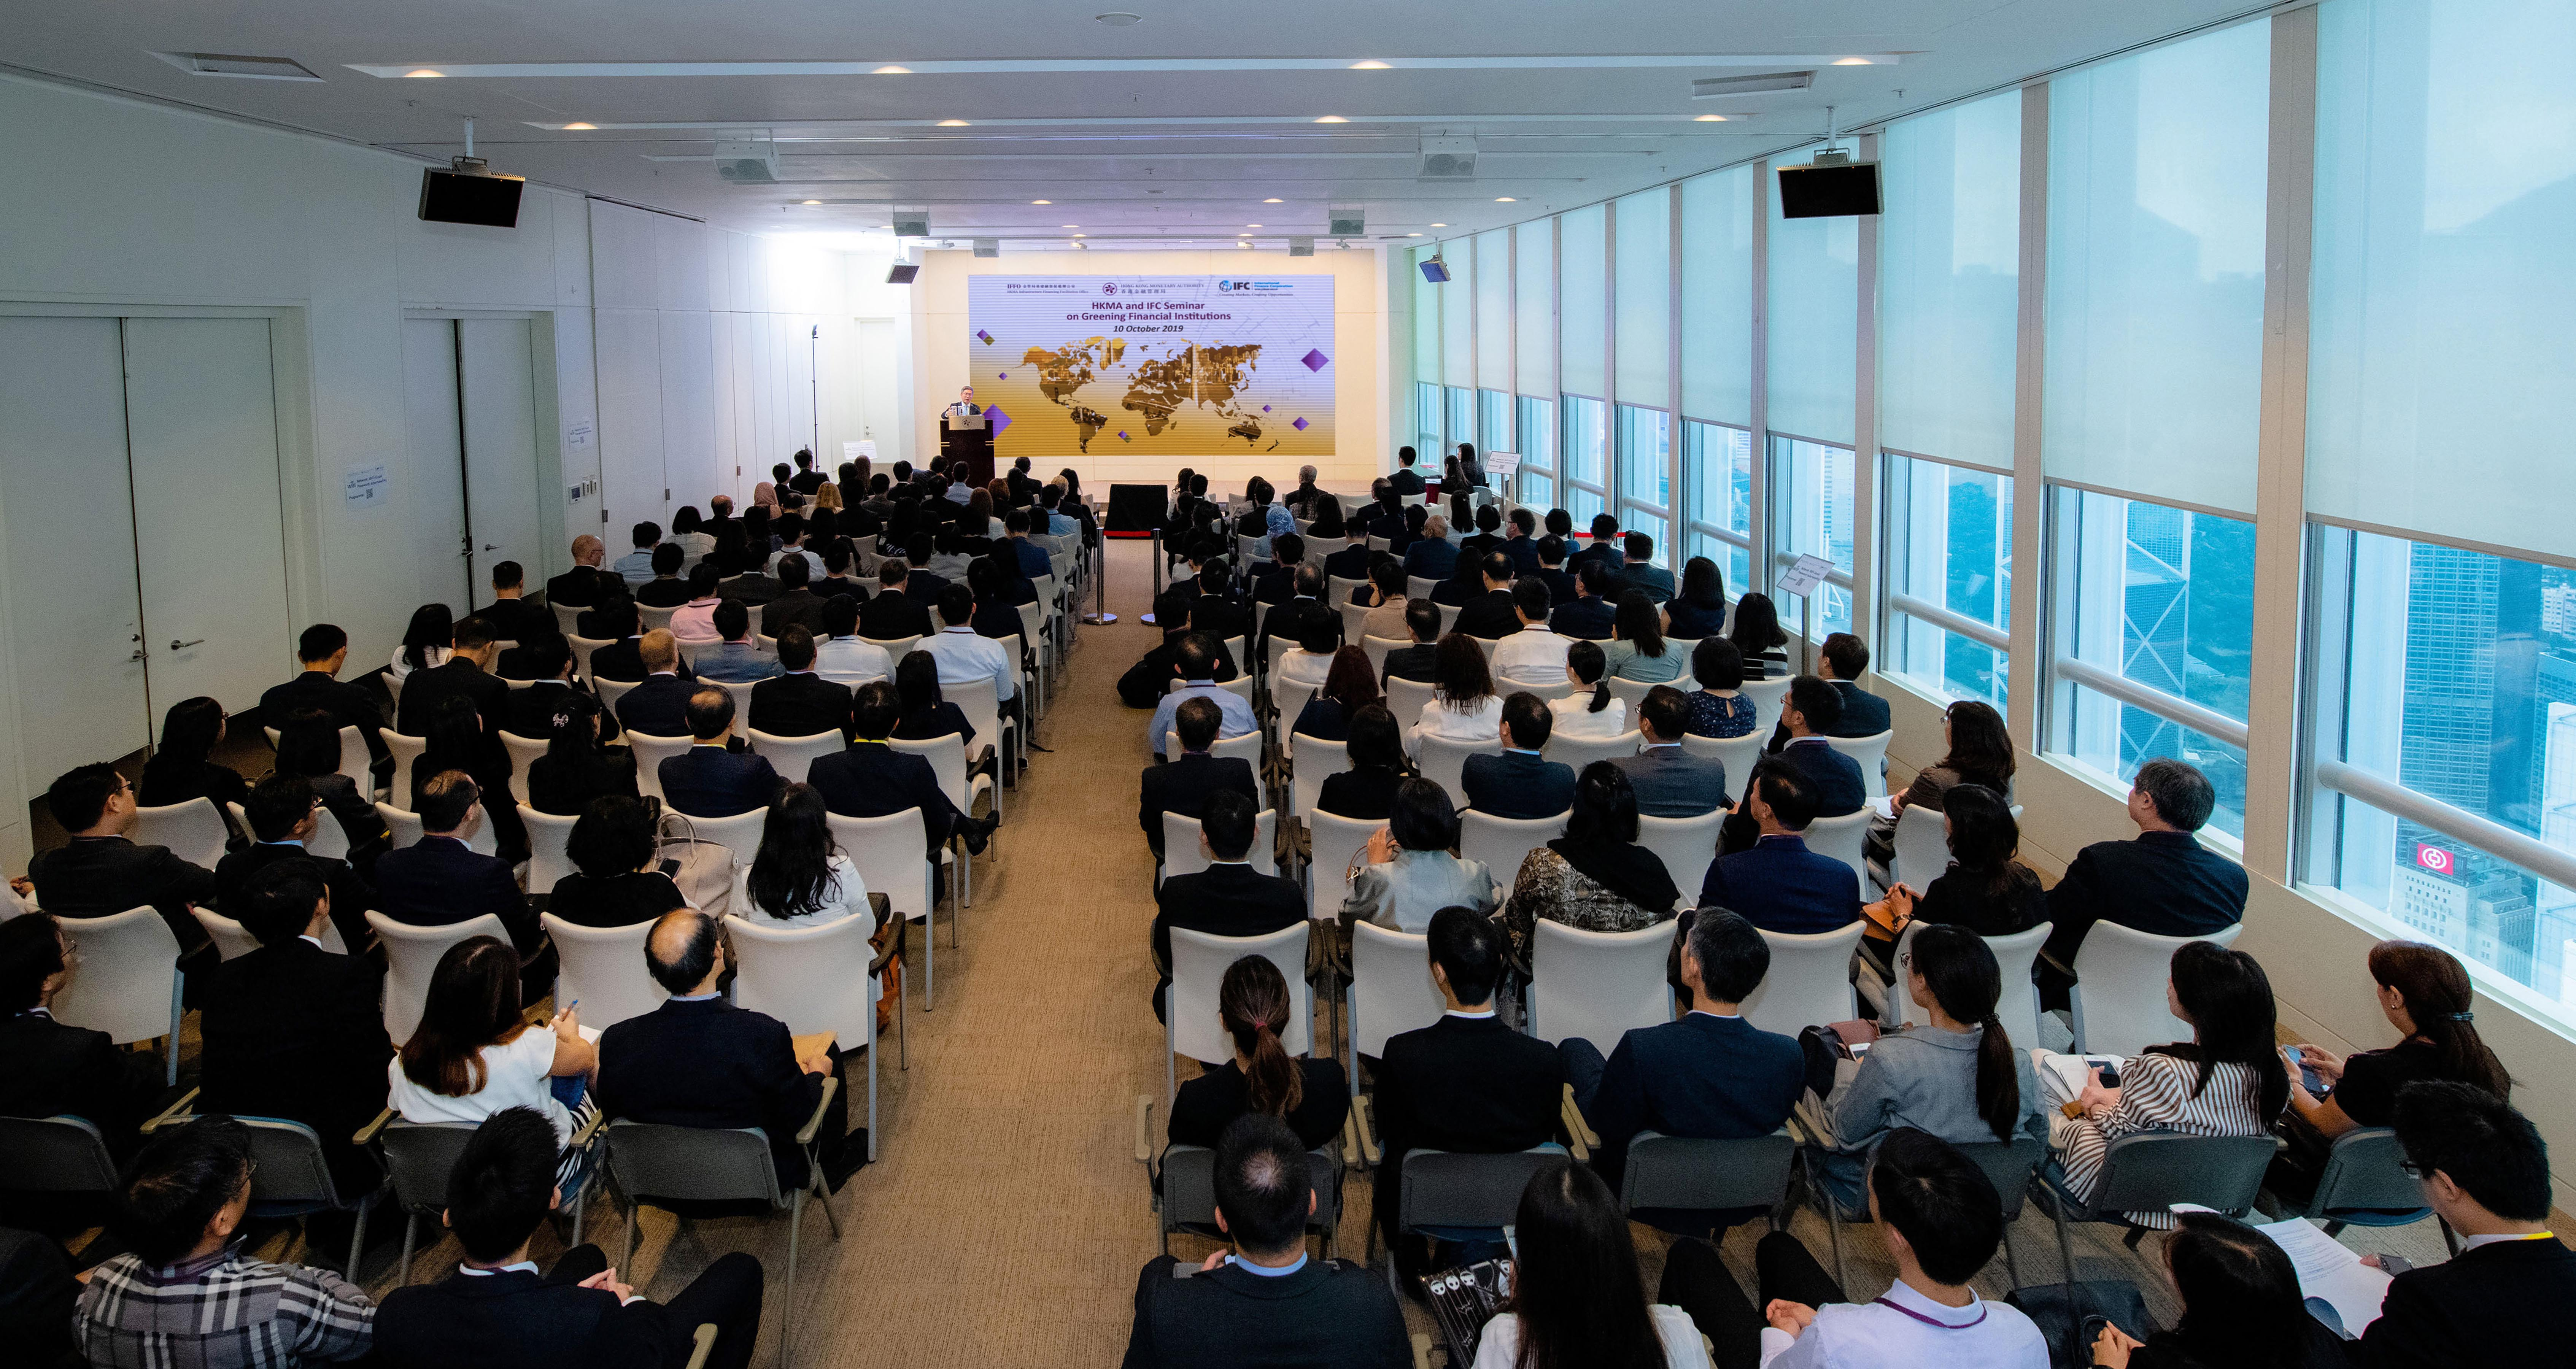 HKMA-IFFO Centre for Green Finance and IFC co-organise a seminar on Greening Financial Institutions. The seminar is attended by over 300 senior executives, comprising bankers, corporate treasurers, project developers and operators, and professional service providers.